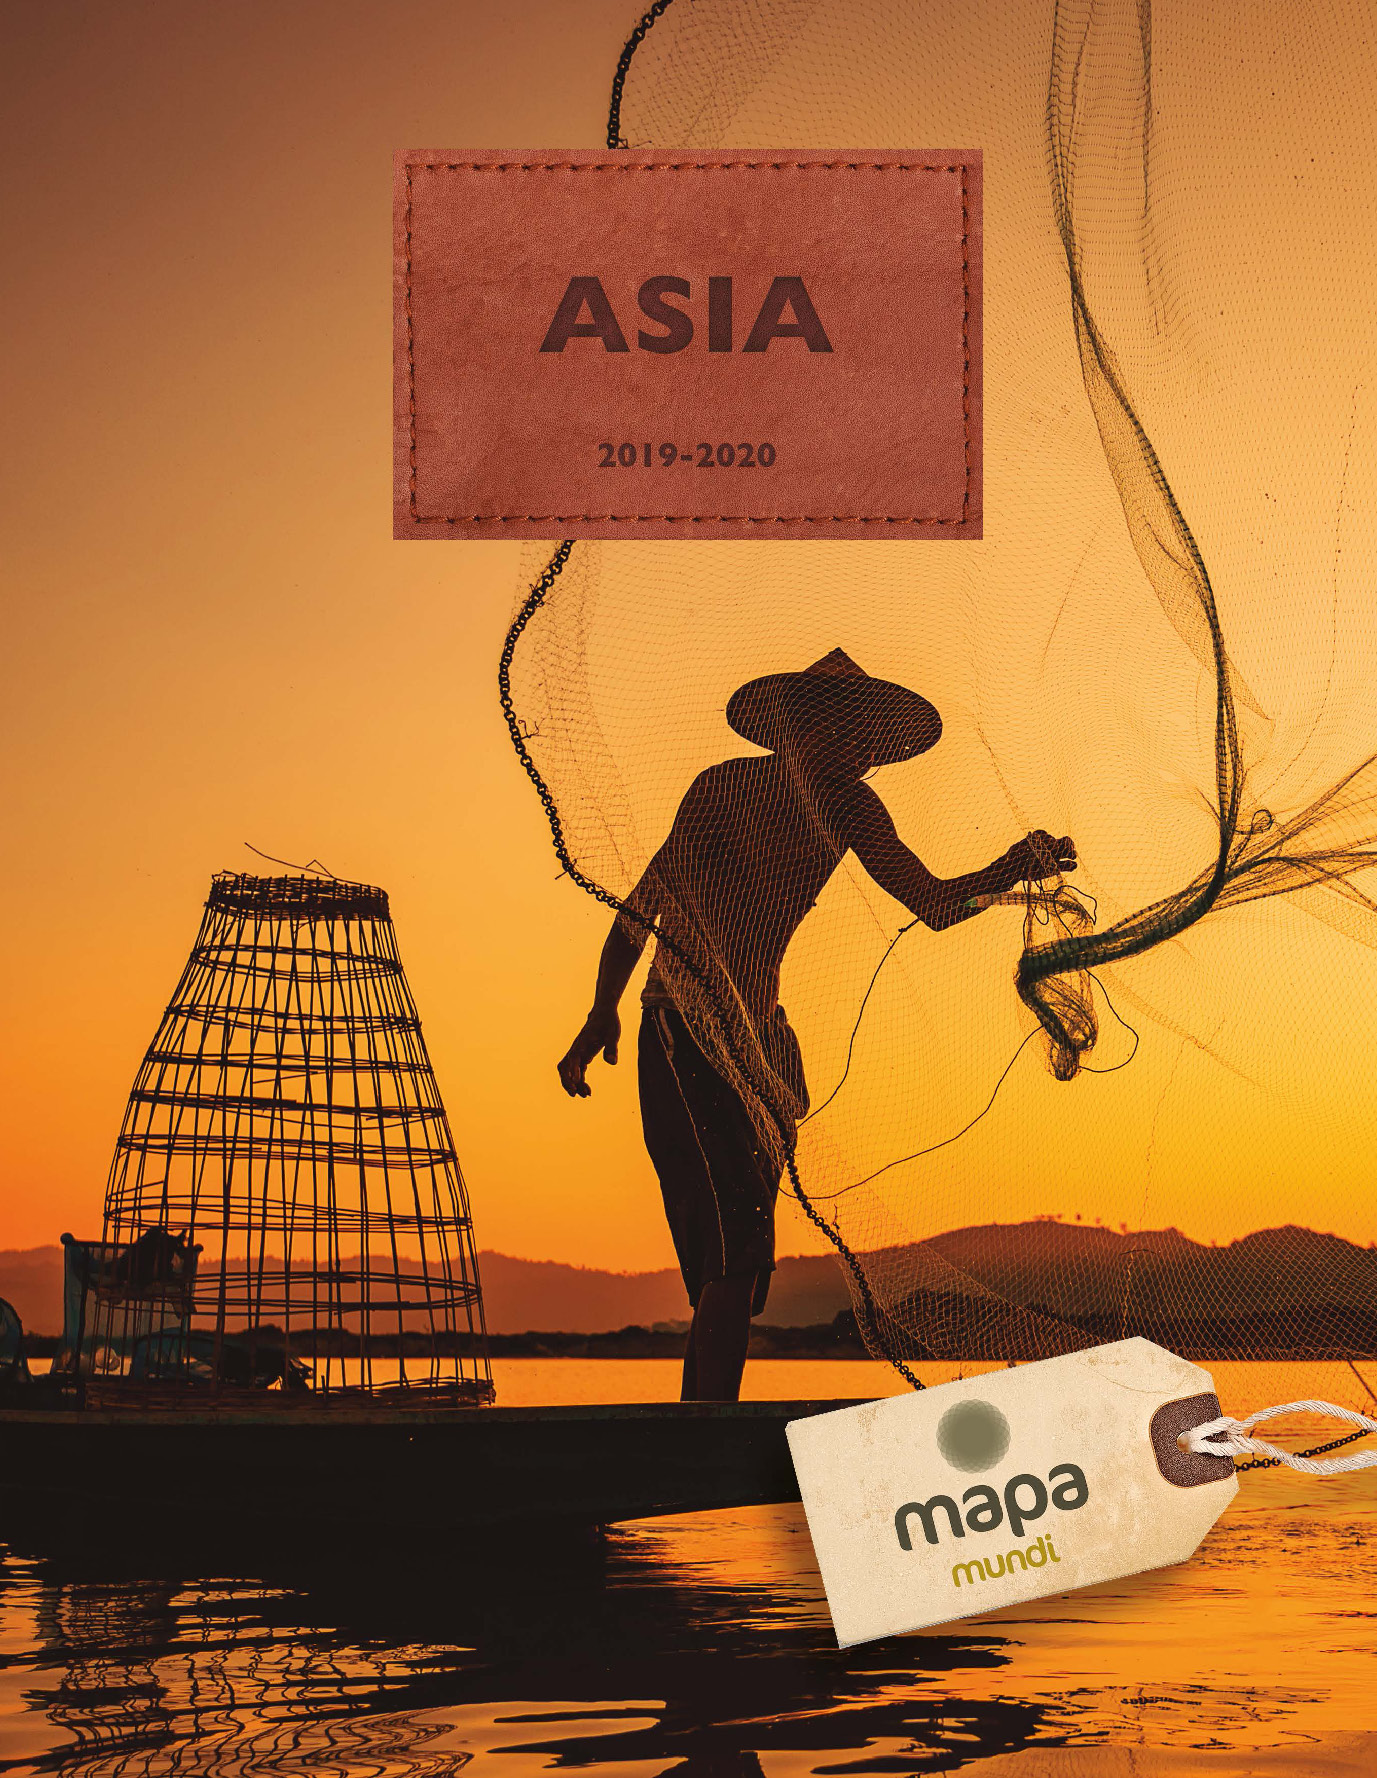 Catalogo Mapa Tours Asia 2019-2020